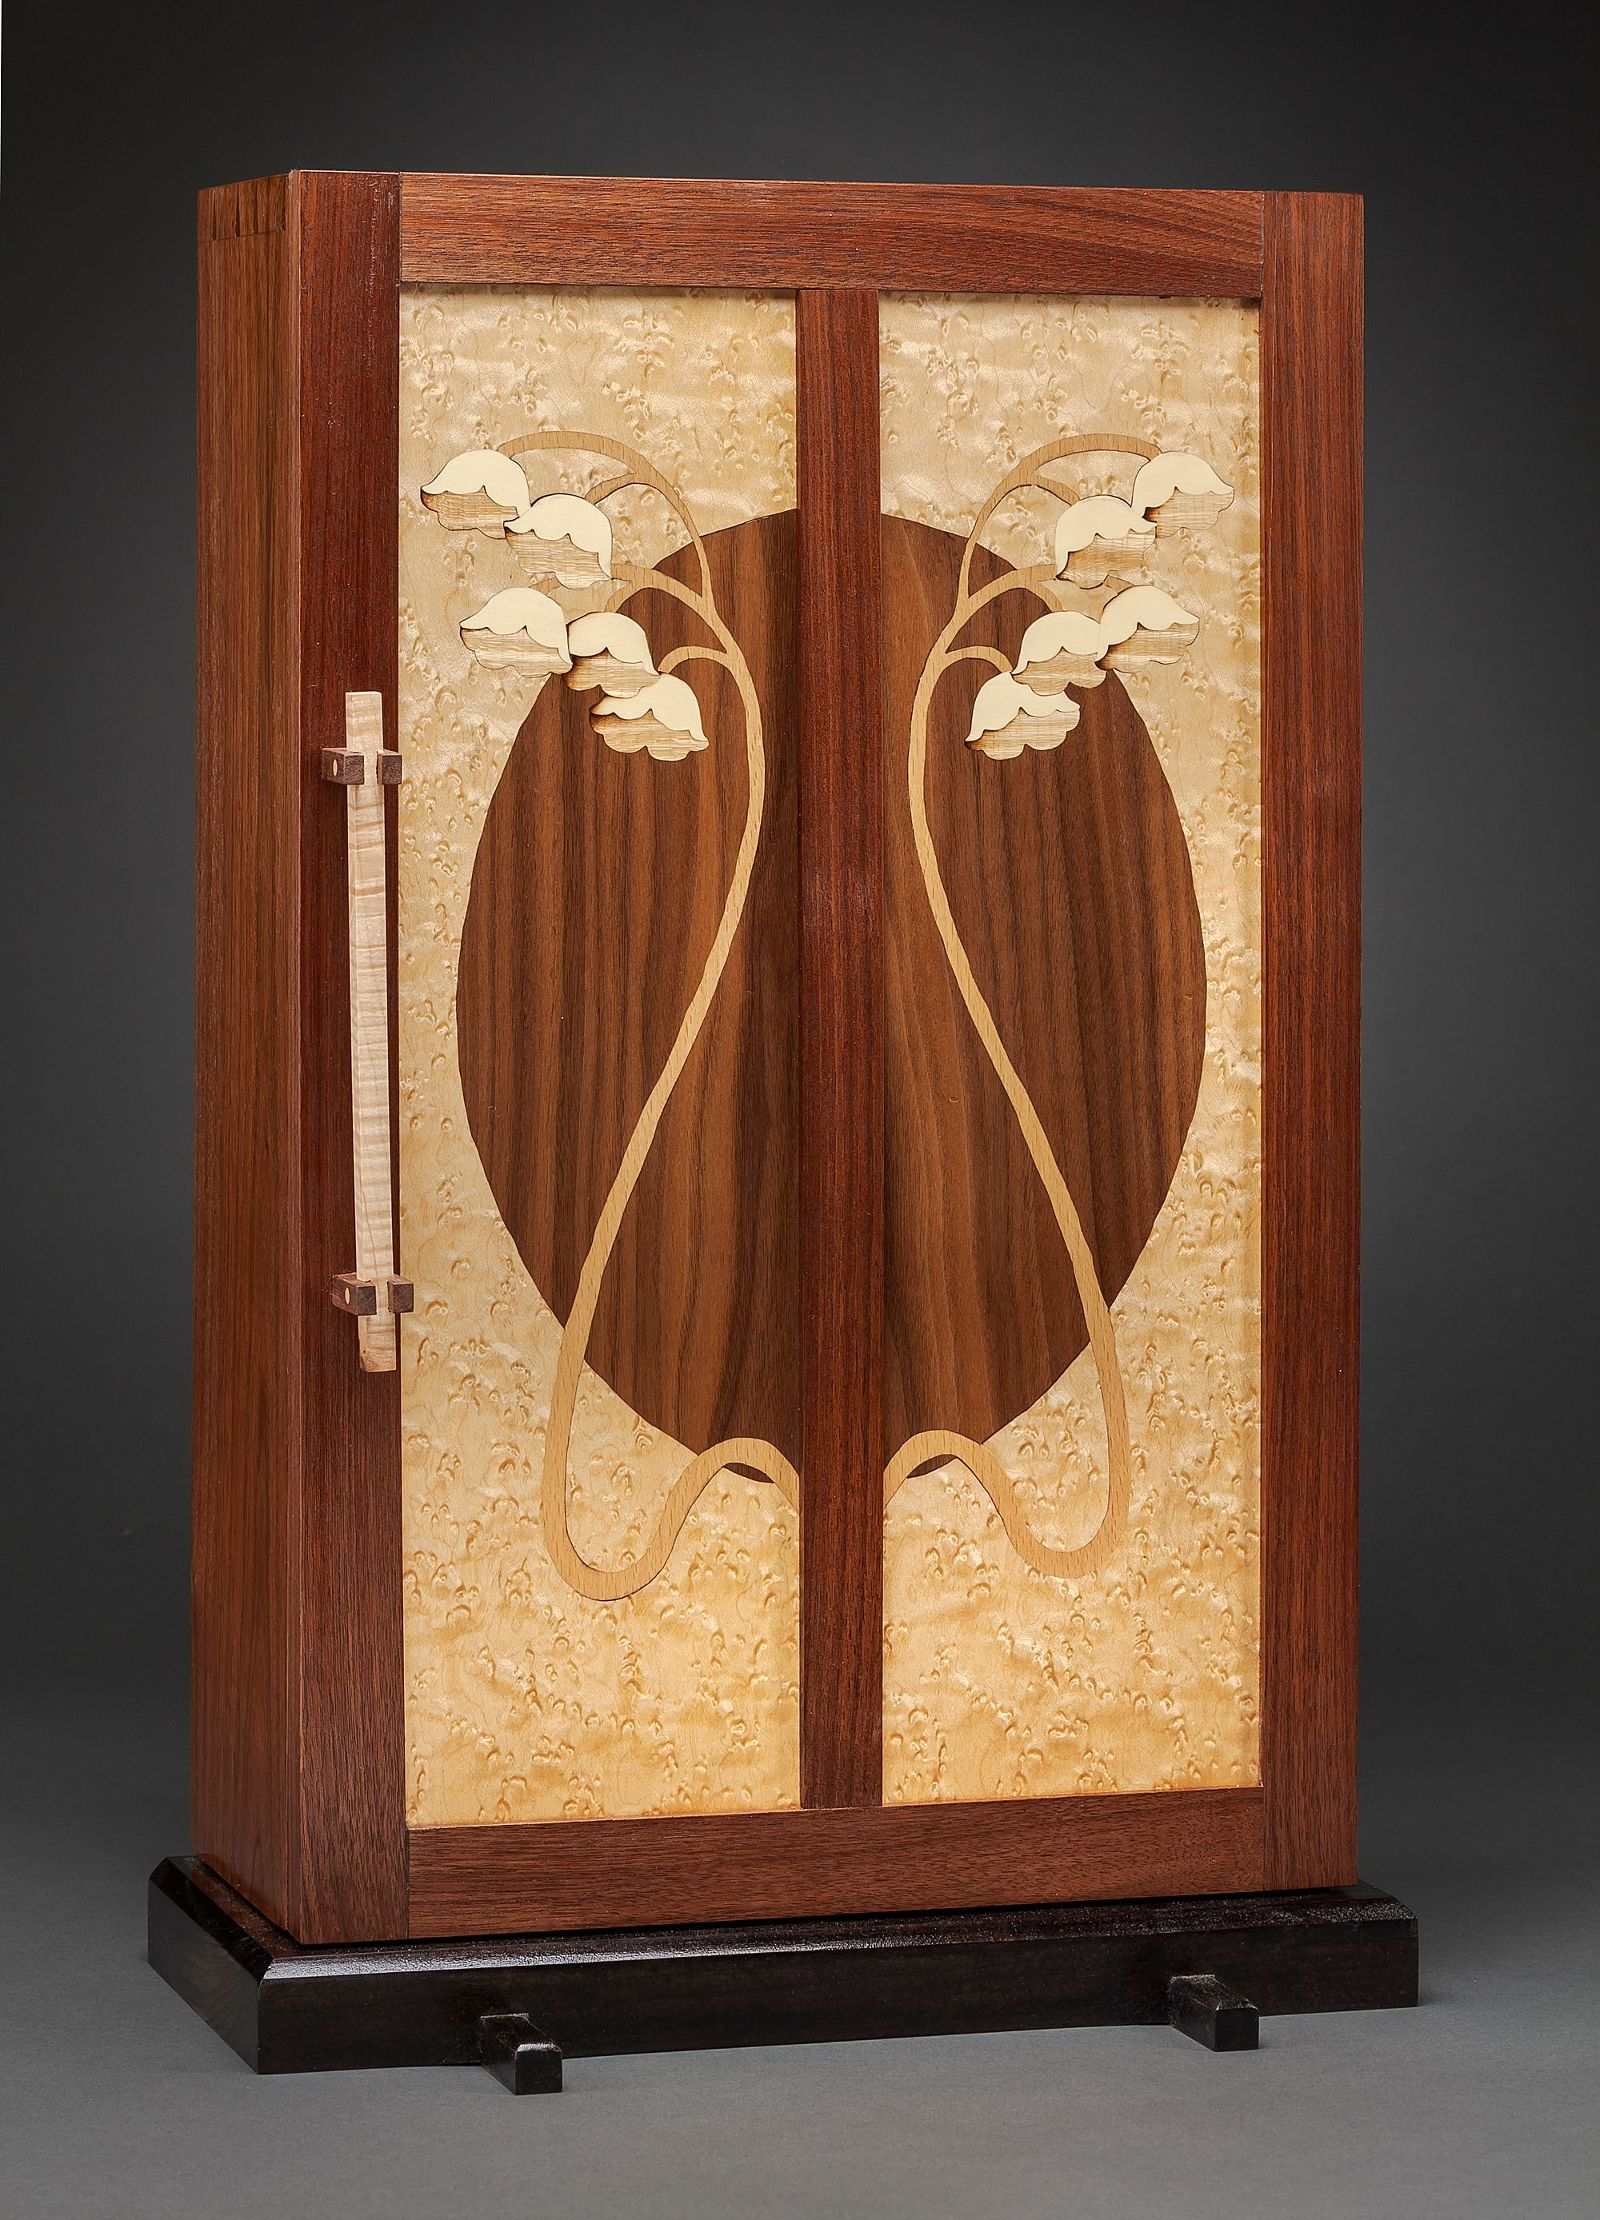 Lily of the Valley Jewelry Cabinet   Heller & Heller Furniture   Photo by Robert Batey